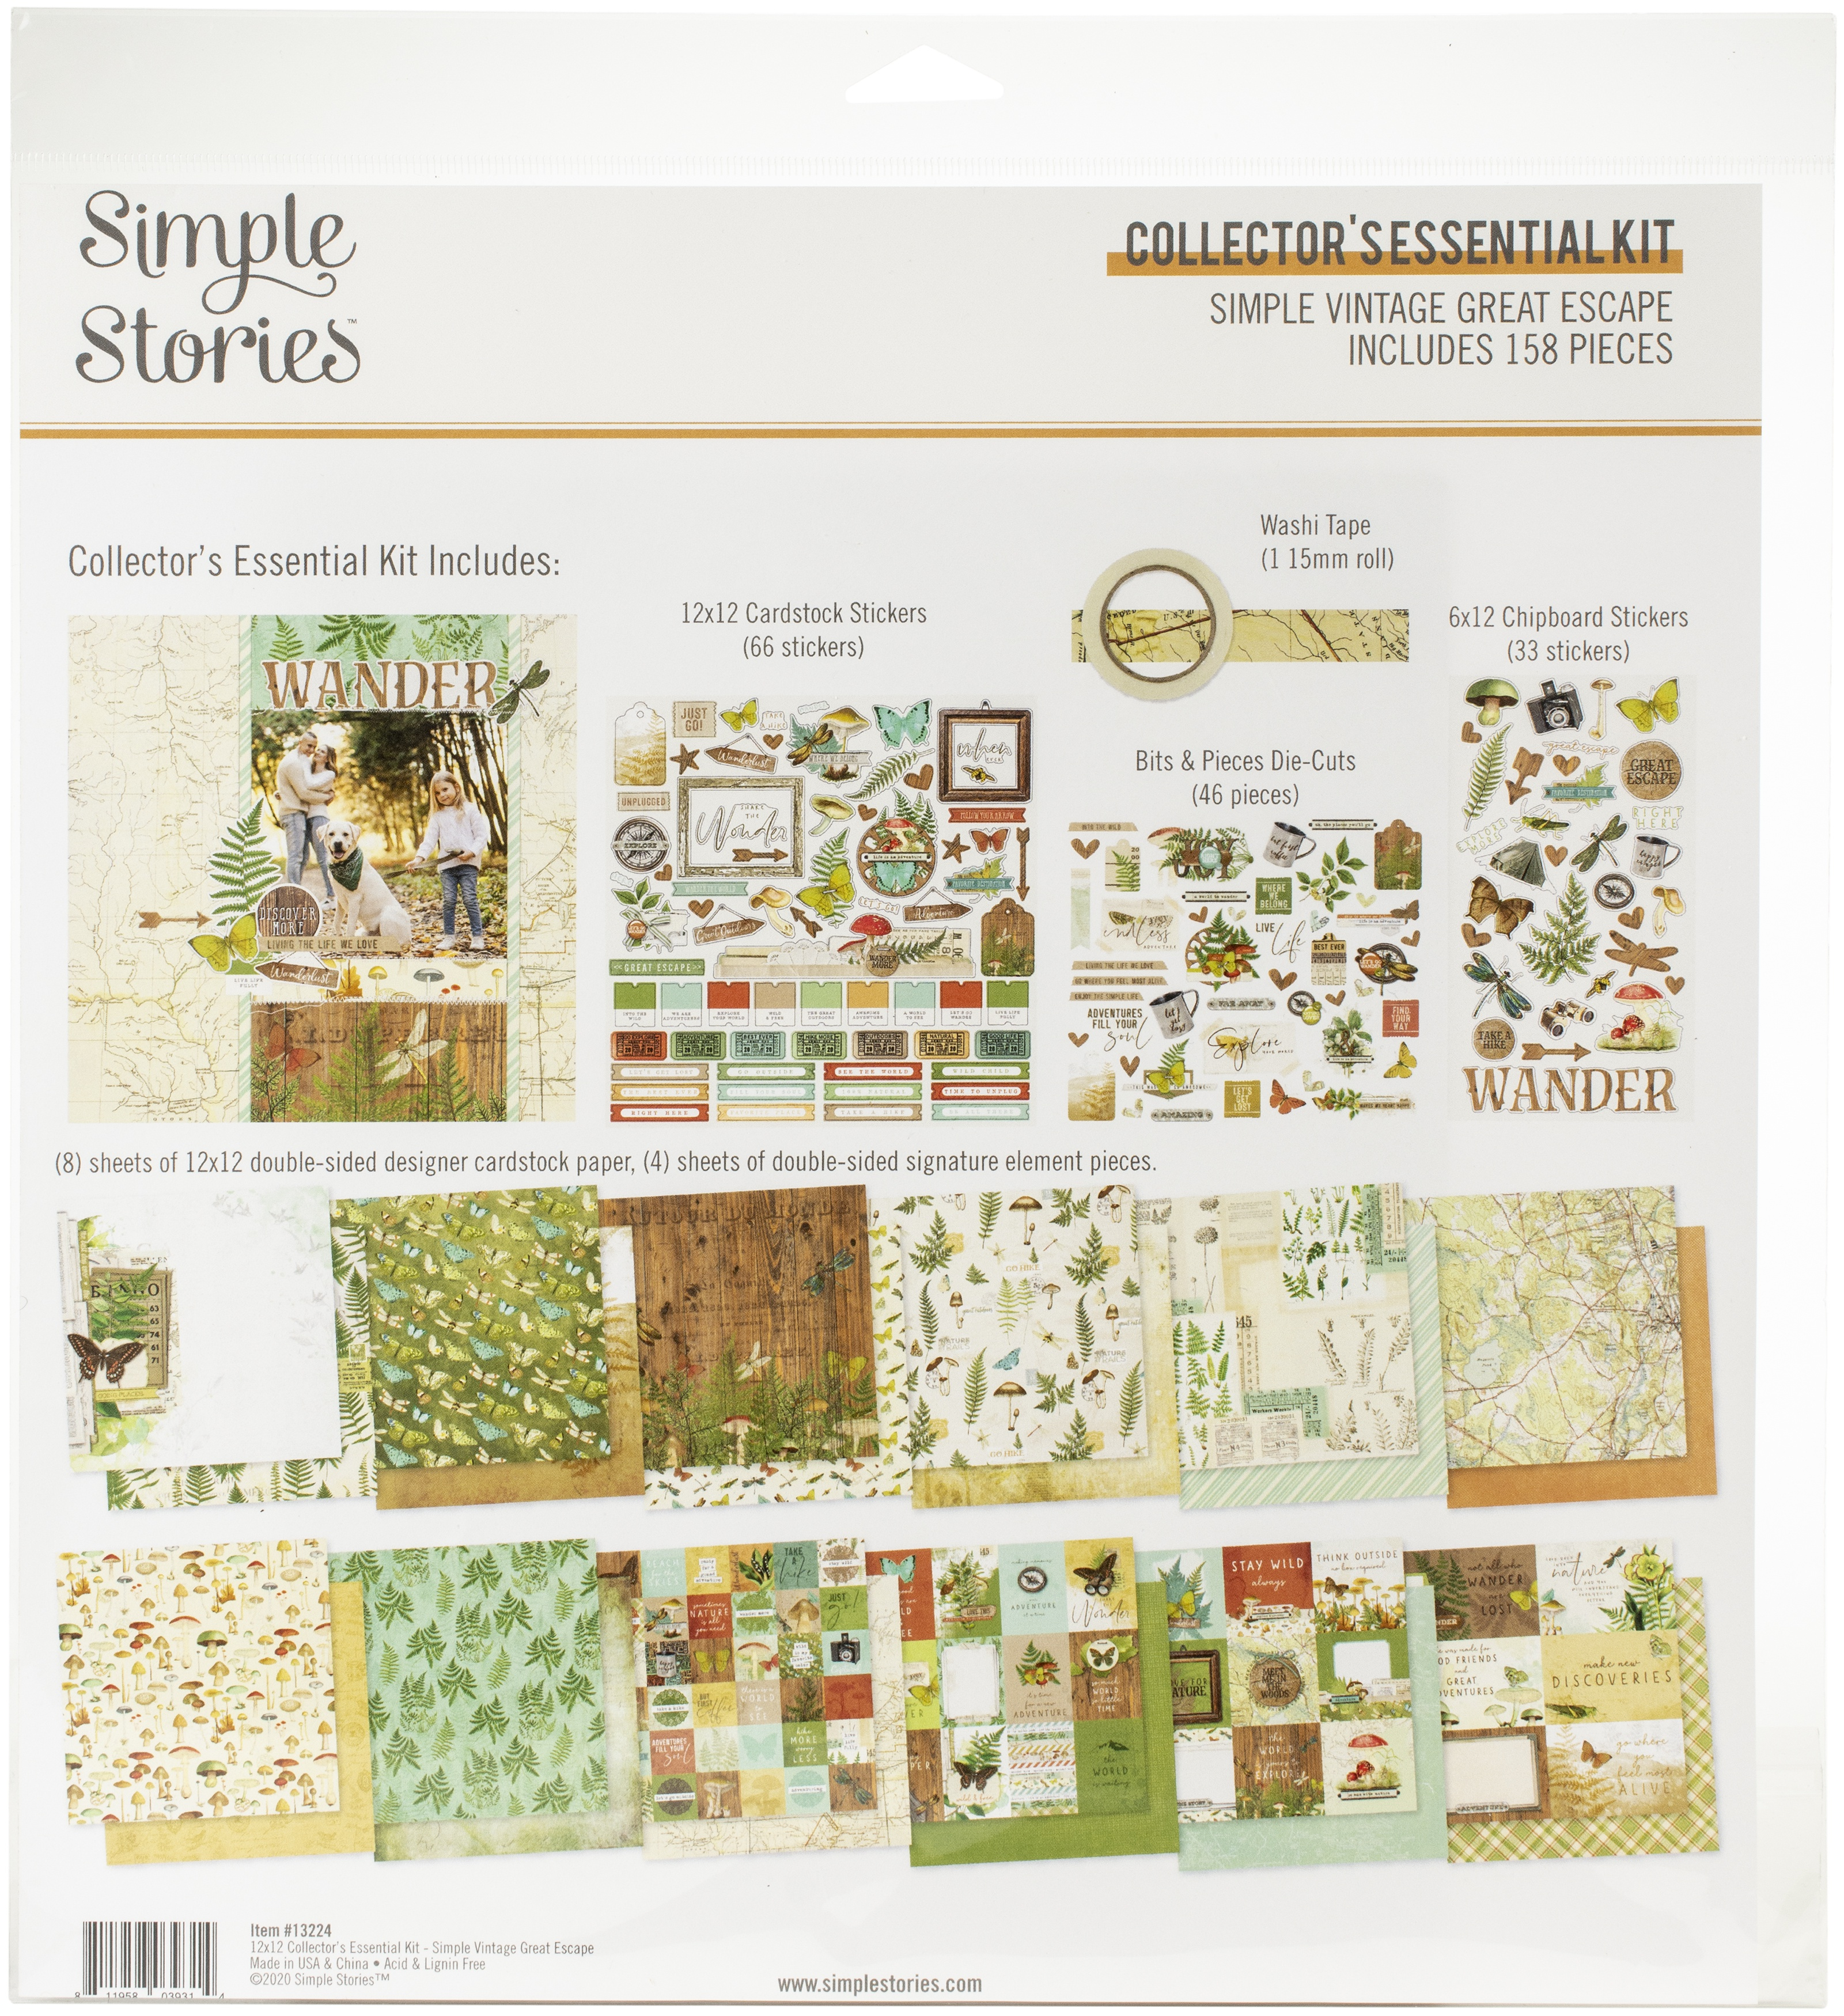 Simple Stories Collector's Essential Kit 12X12-Simple Vintage Great Escape